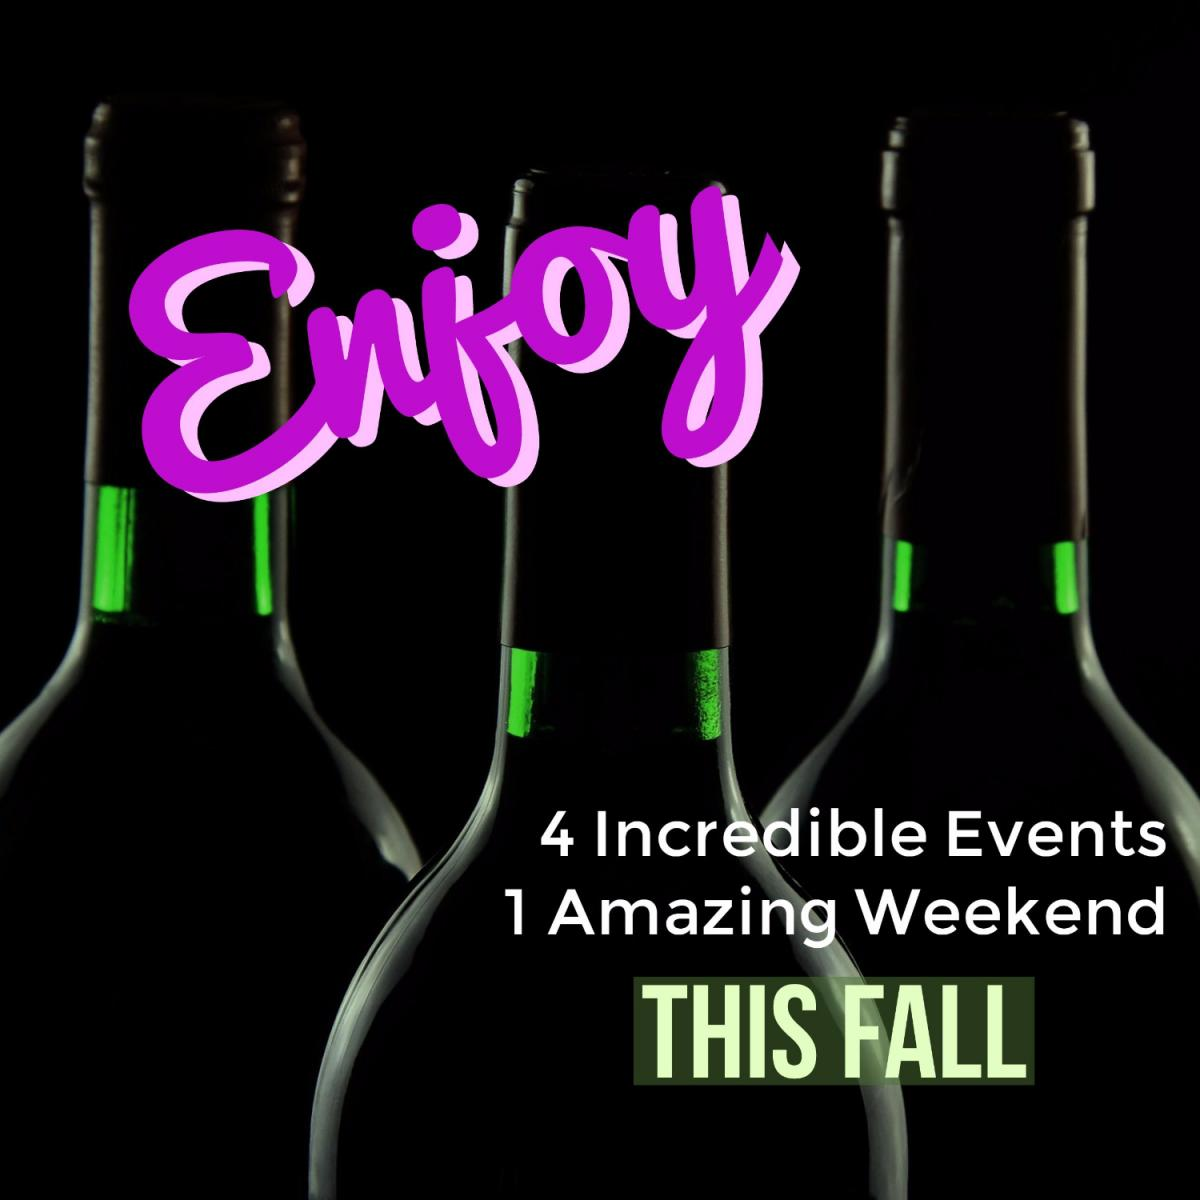 4 Incredible Events 1 Amazing Weekend this Fall in St. Pete!